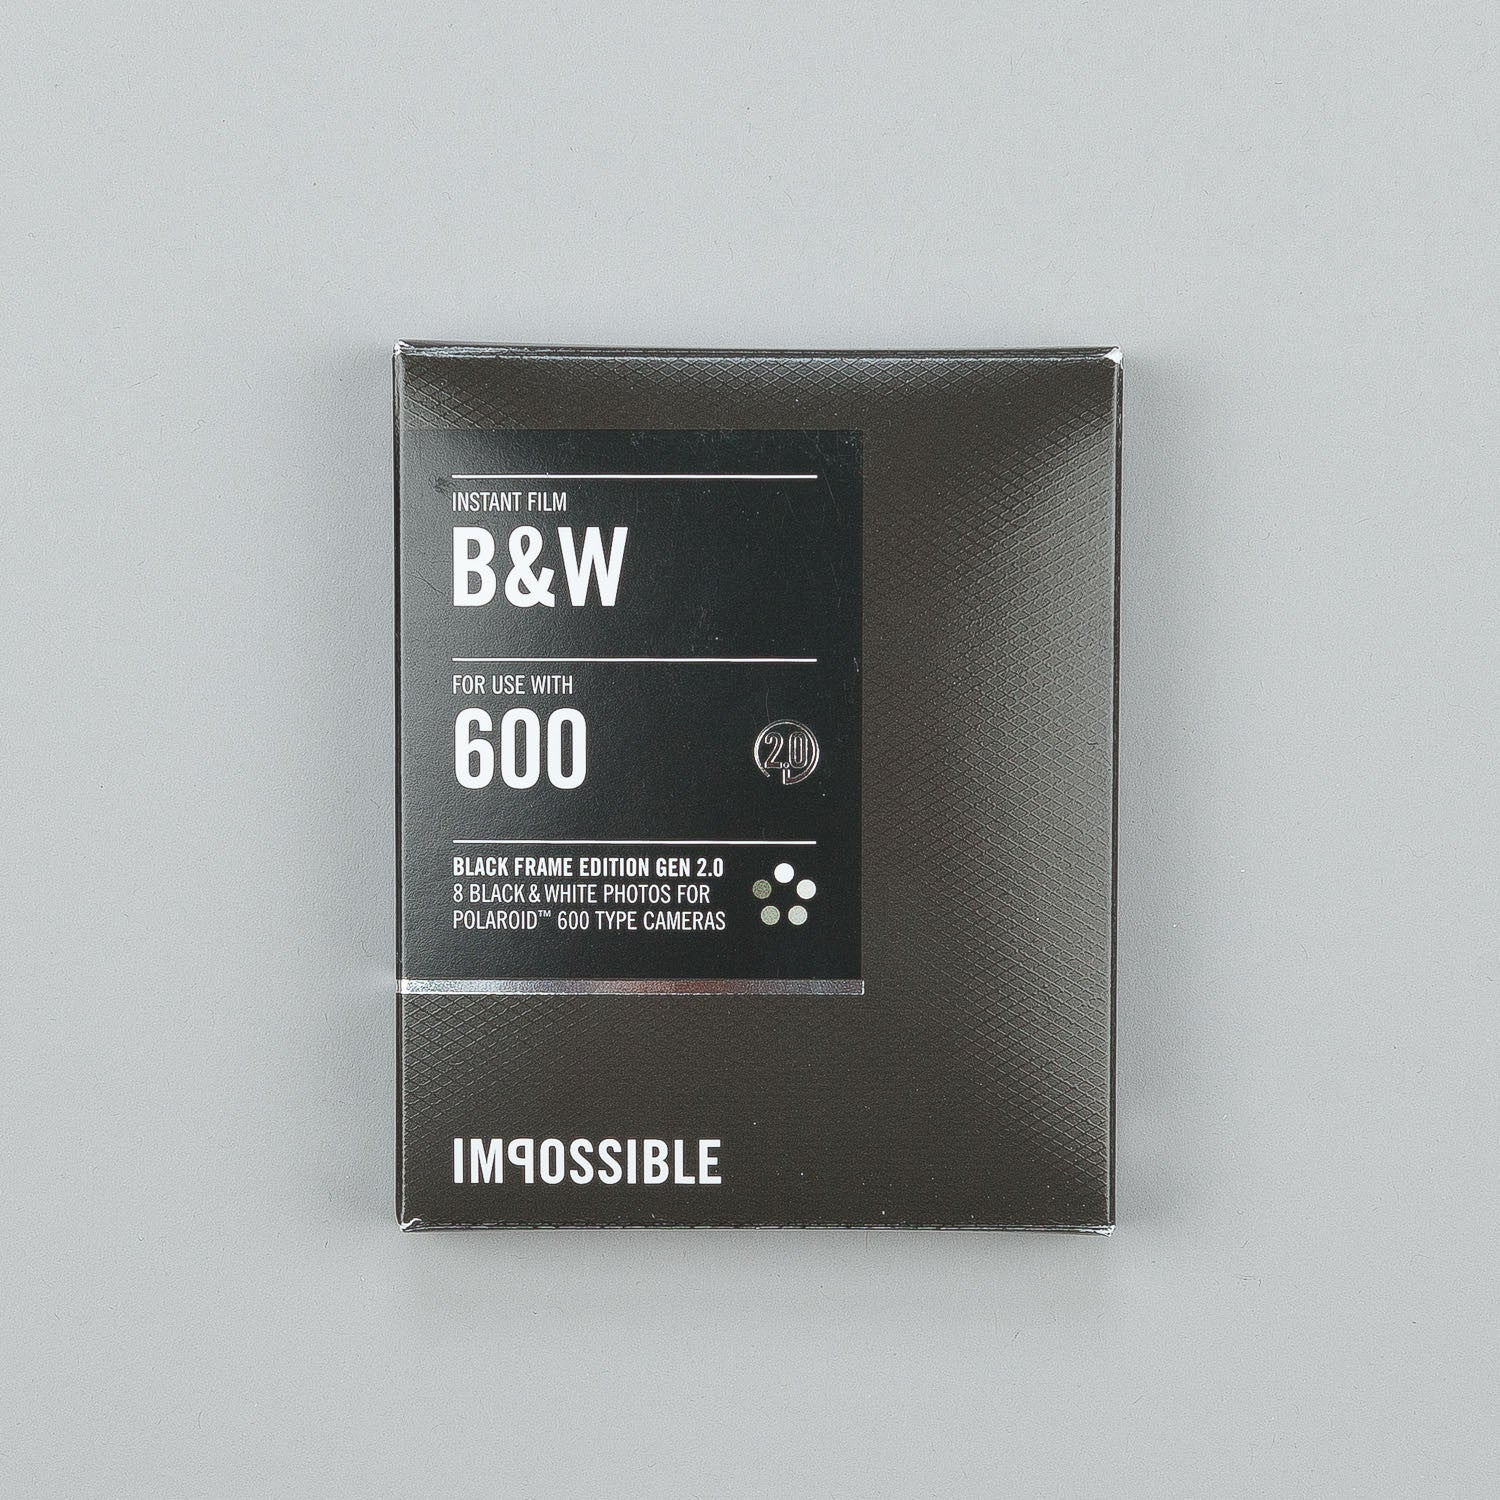 Impossible Black & White Film for Polaroid 600 Type Cameras 2.0